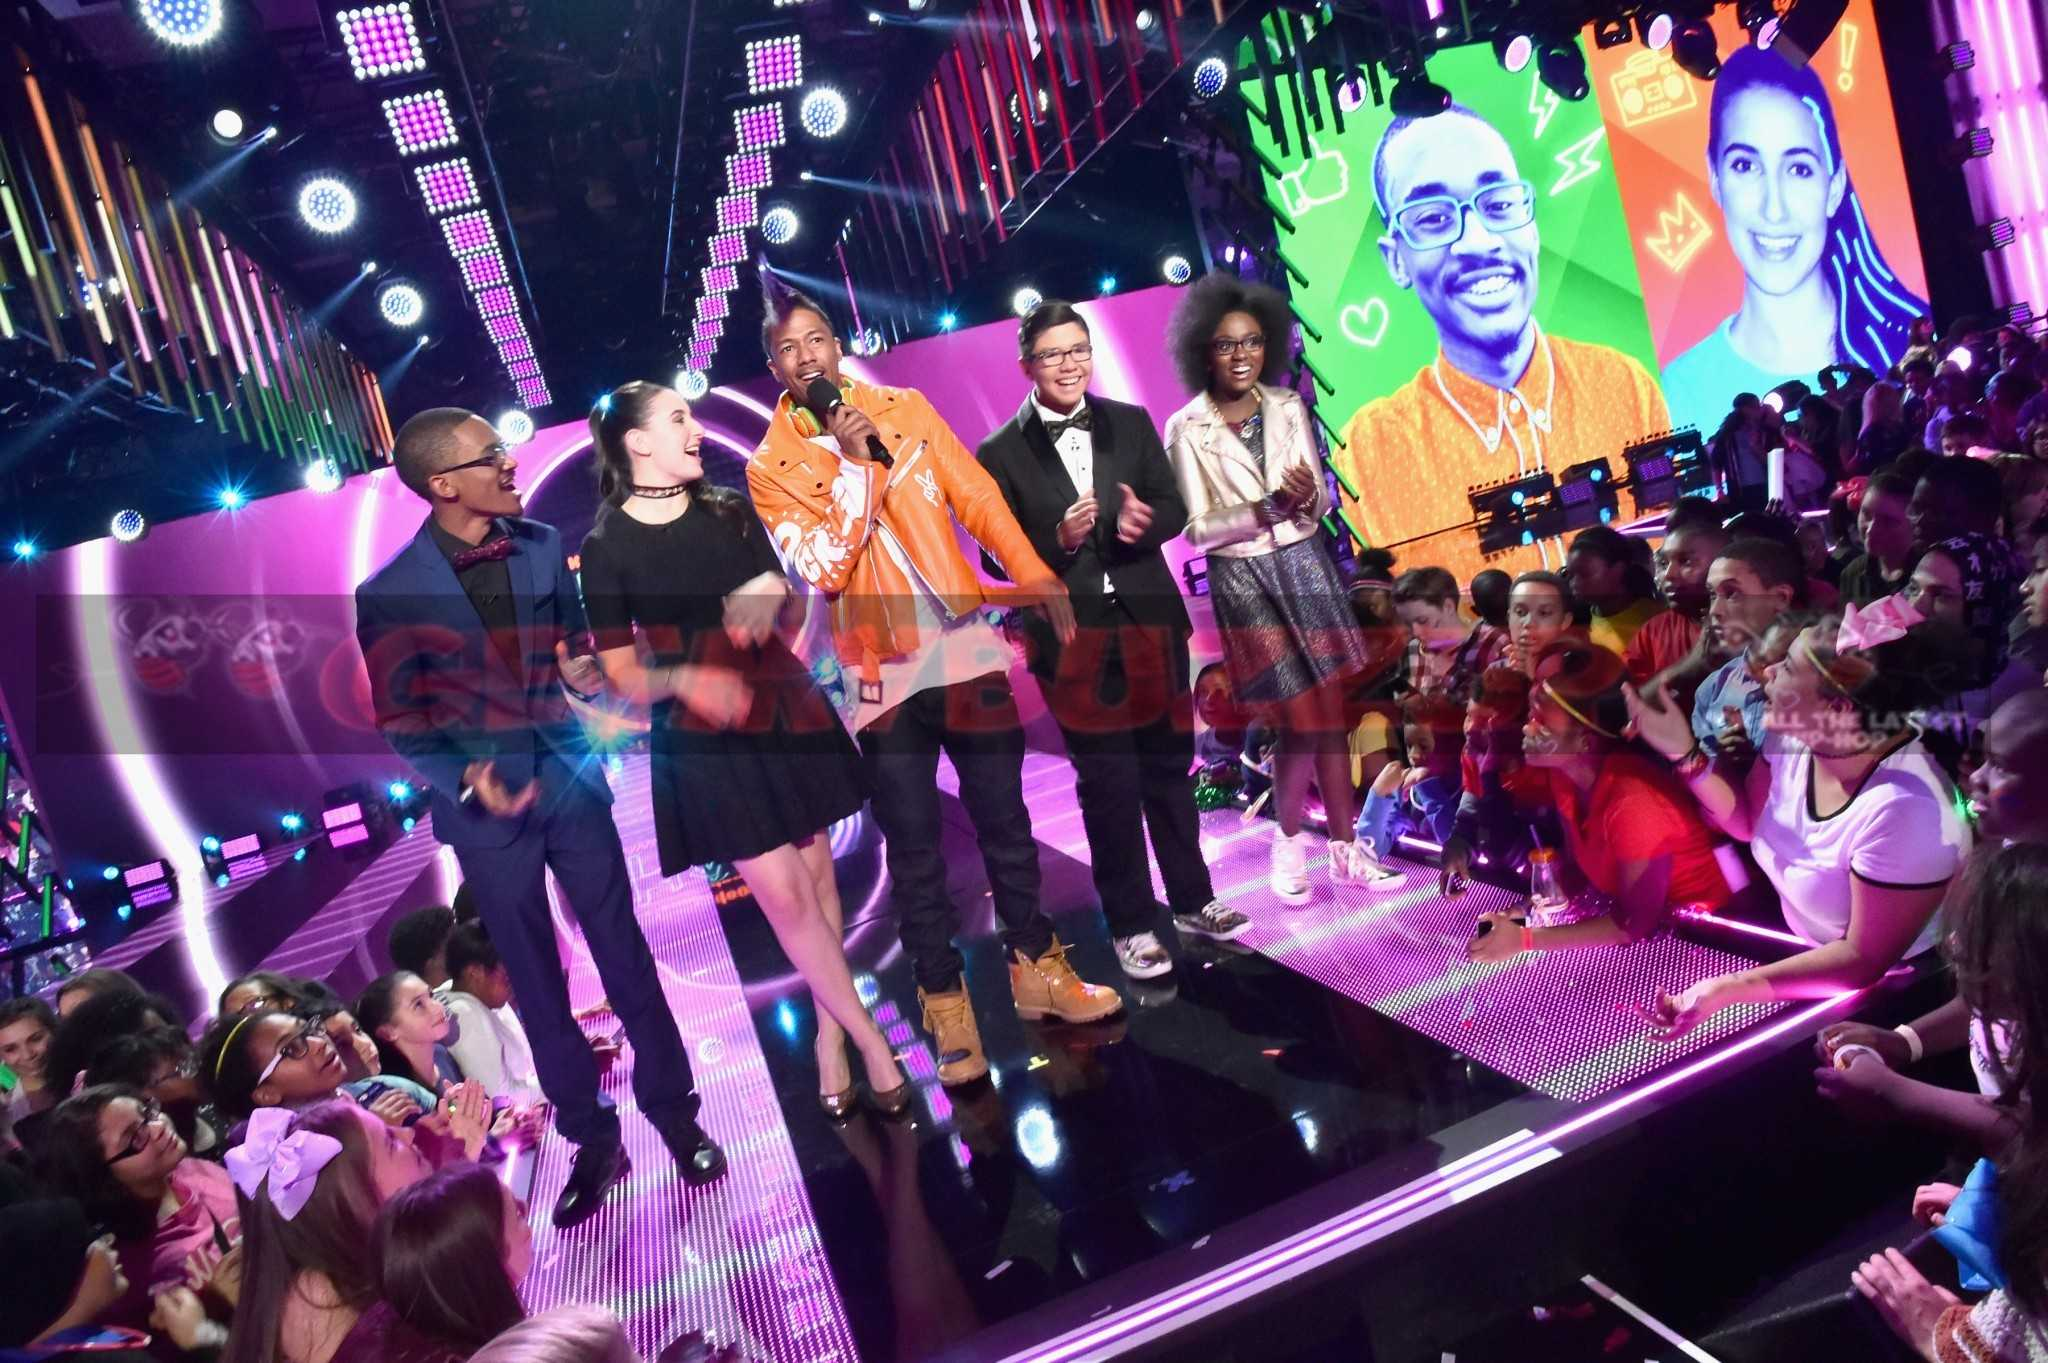 JASON DERULO, HAILEE STEINFELD, ZEDD, ALESSIA CARA, DAYA AND MORE JOIN HOST NICK CANNON FOR NICKELODEON HALO AWARDS 2016 [PHOTOS + Video]